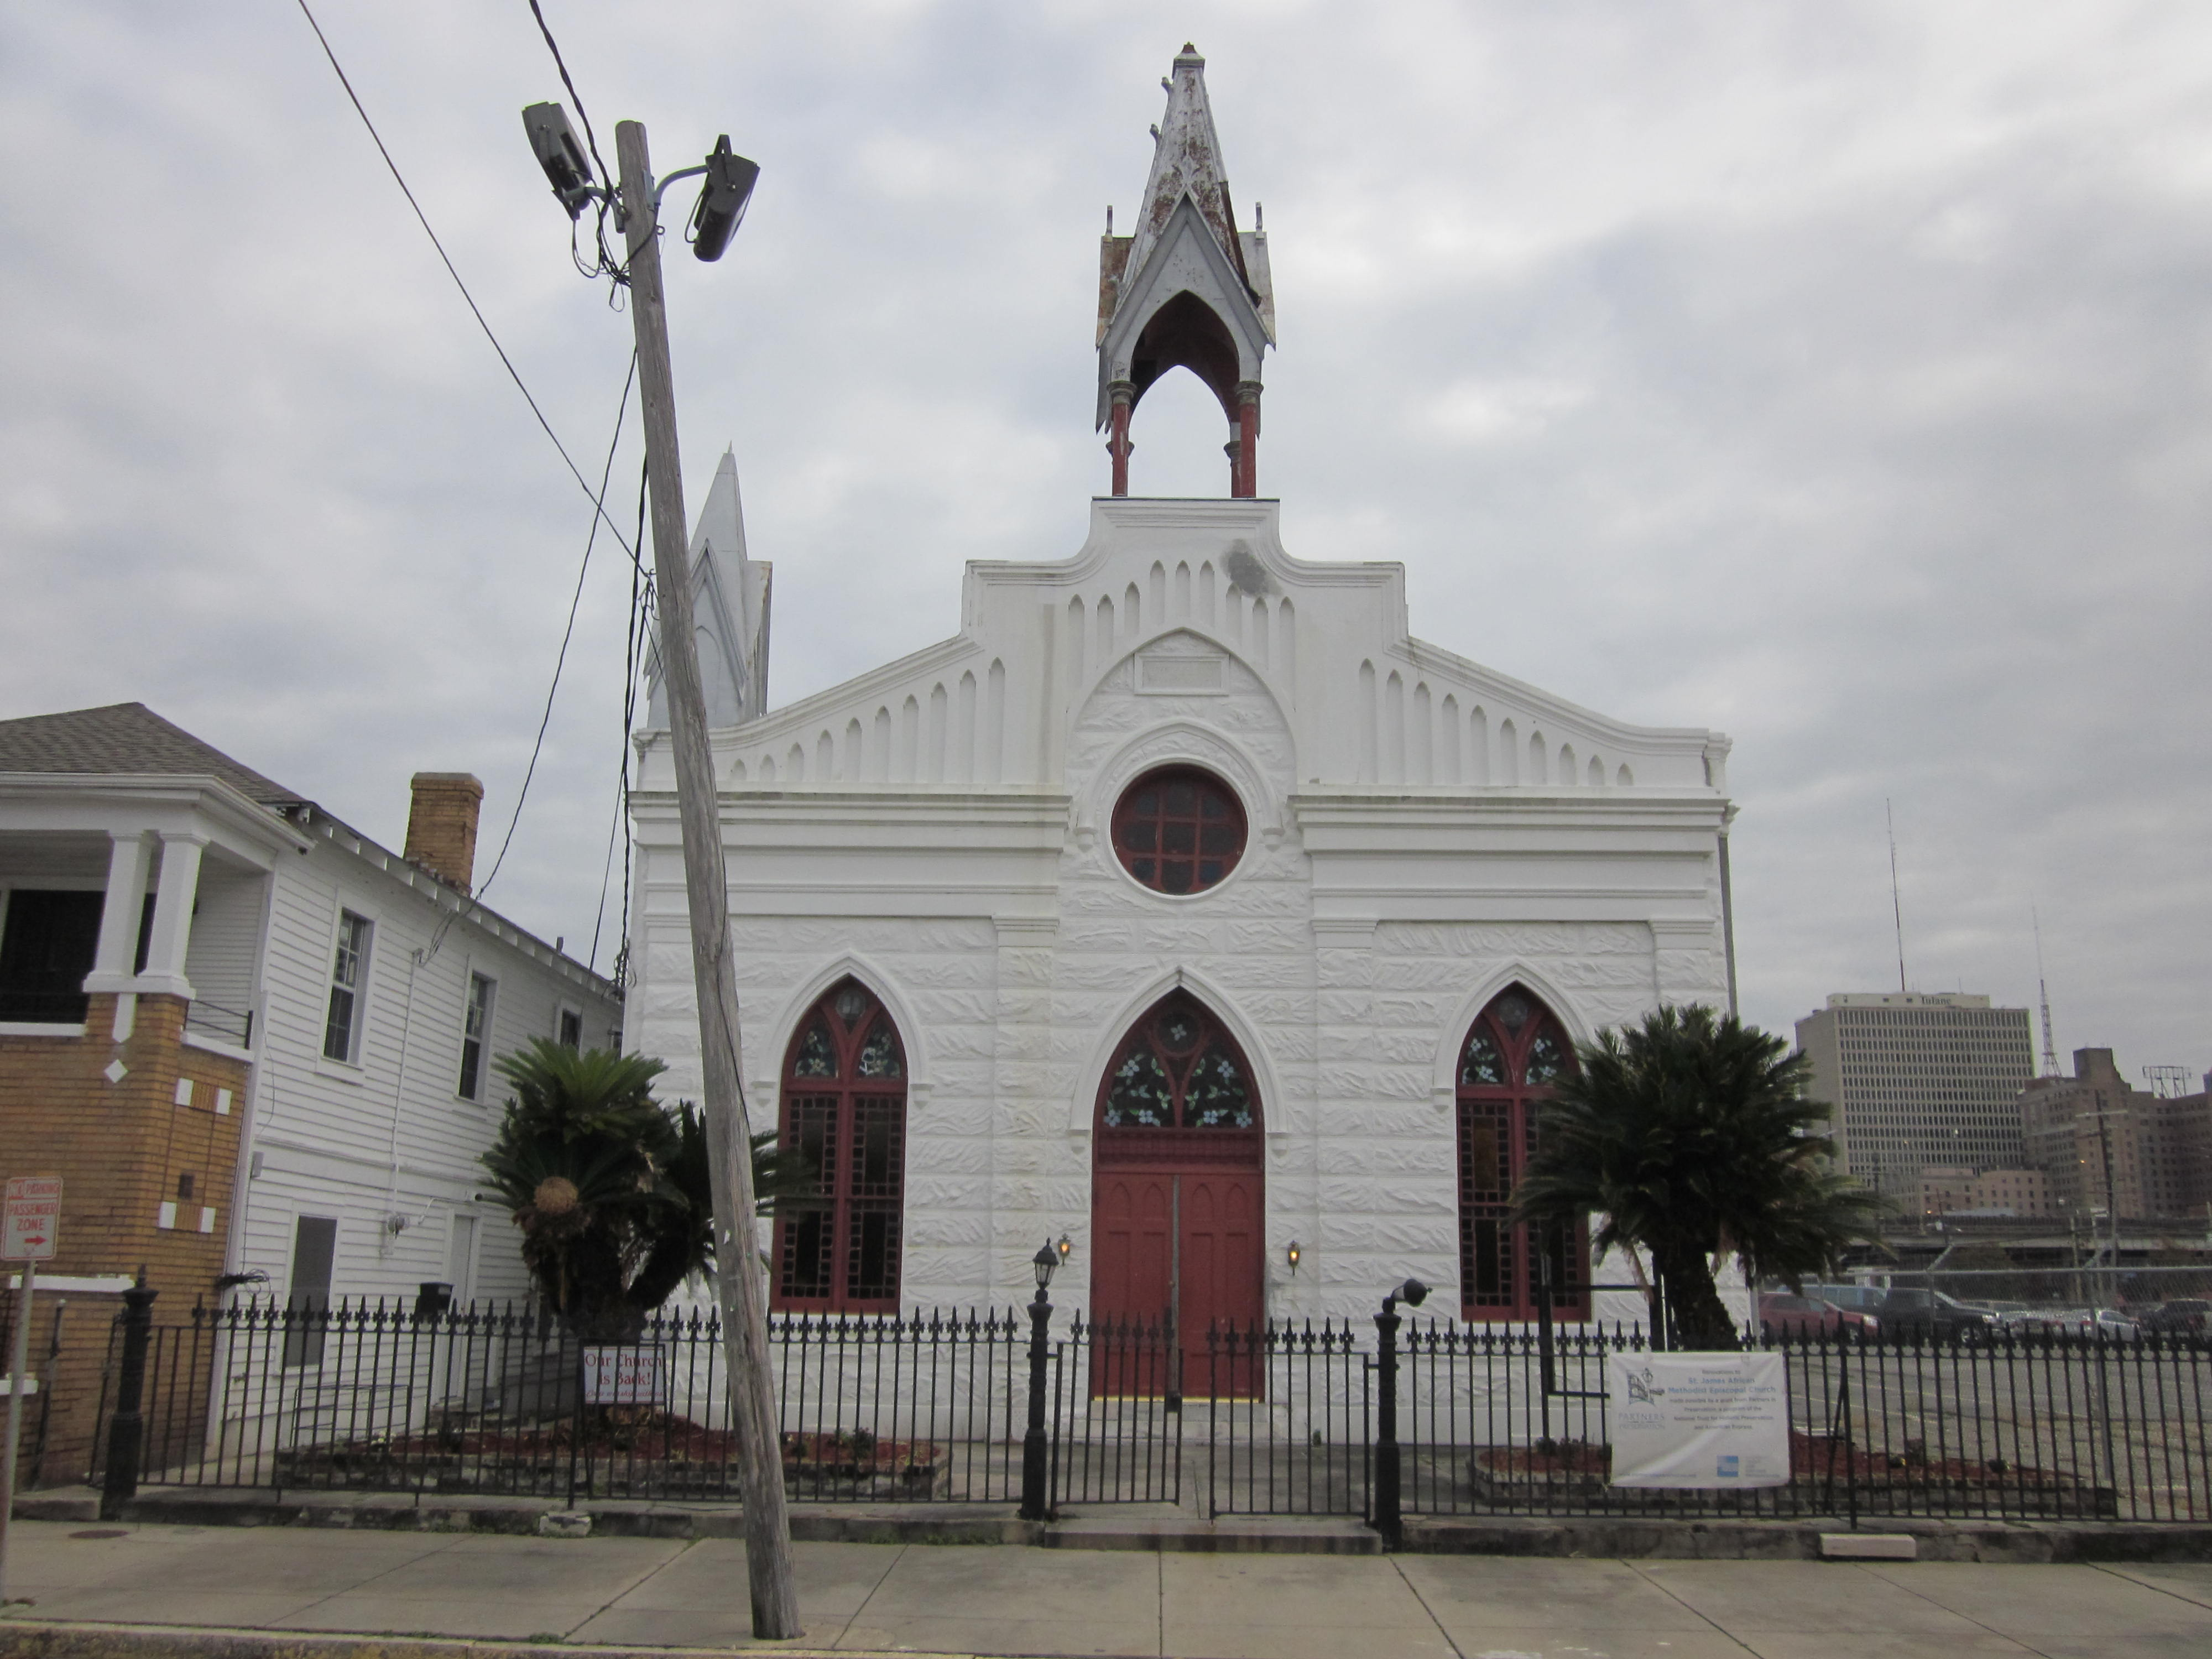 By Infrogmation of New Orleans (Photo by Infrogmation (talk)) [GFDL (http://www.gnu.org/copyleft/fdl.html) or CC BY-SA 3.0 (http://creativecommons.org/licenses/by-sa/3.0)], via Wikimedia Commons